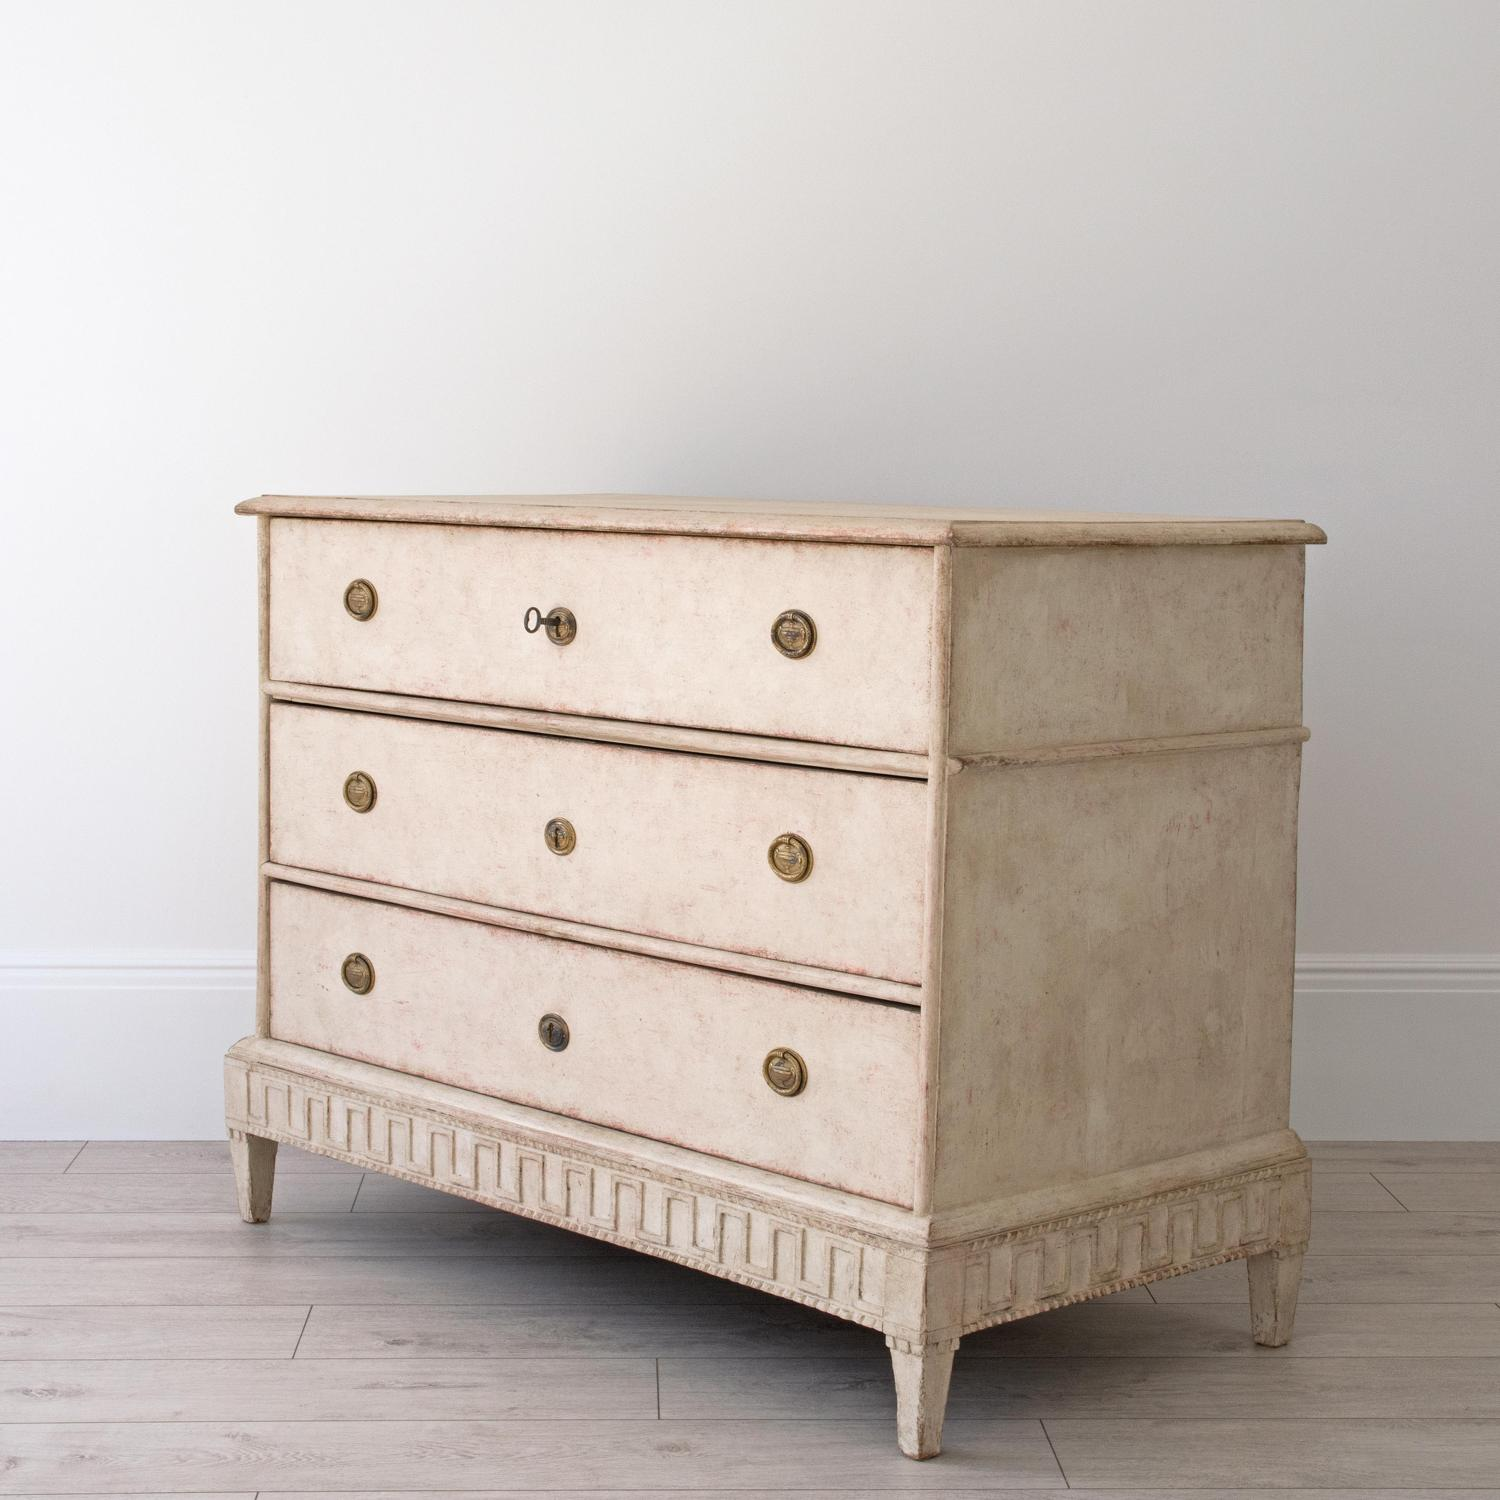 DECORATIVELY CARVED SWEDISH GUSTAVIAN PERIOD CHEST